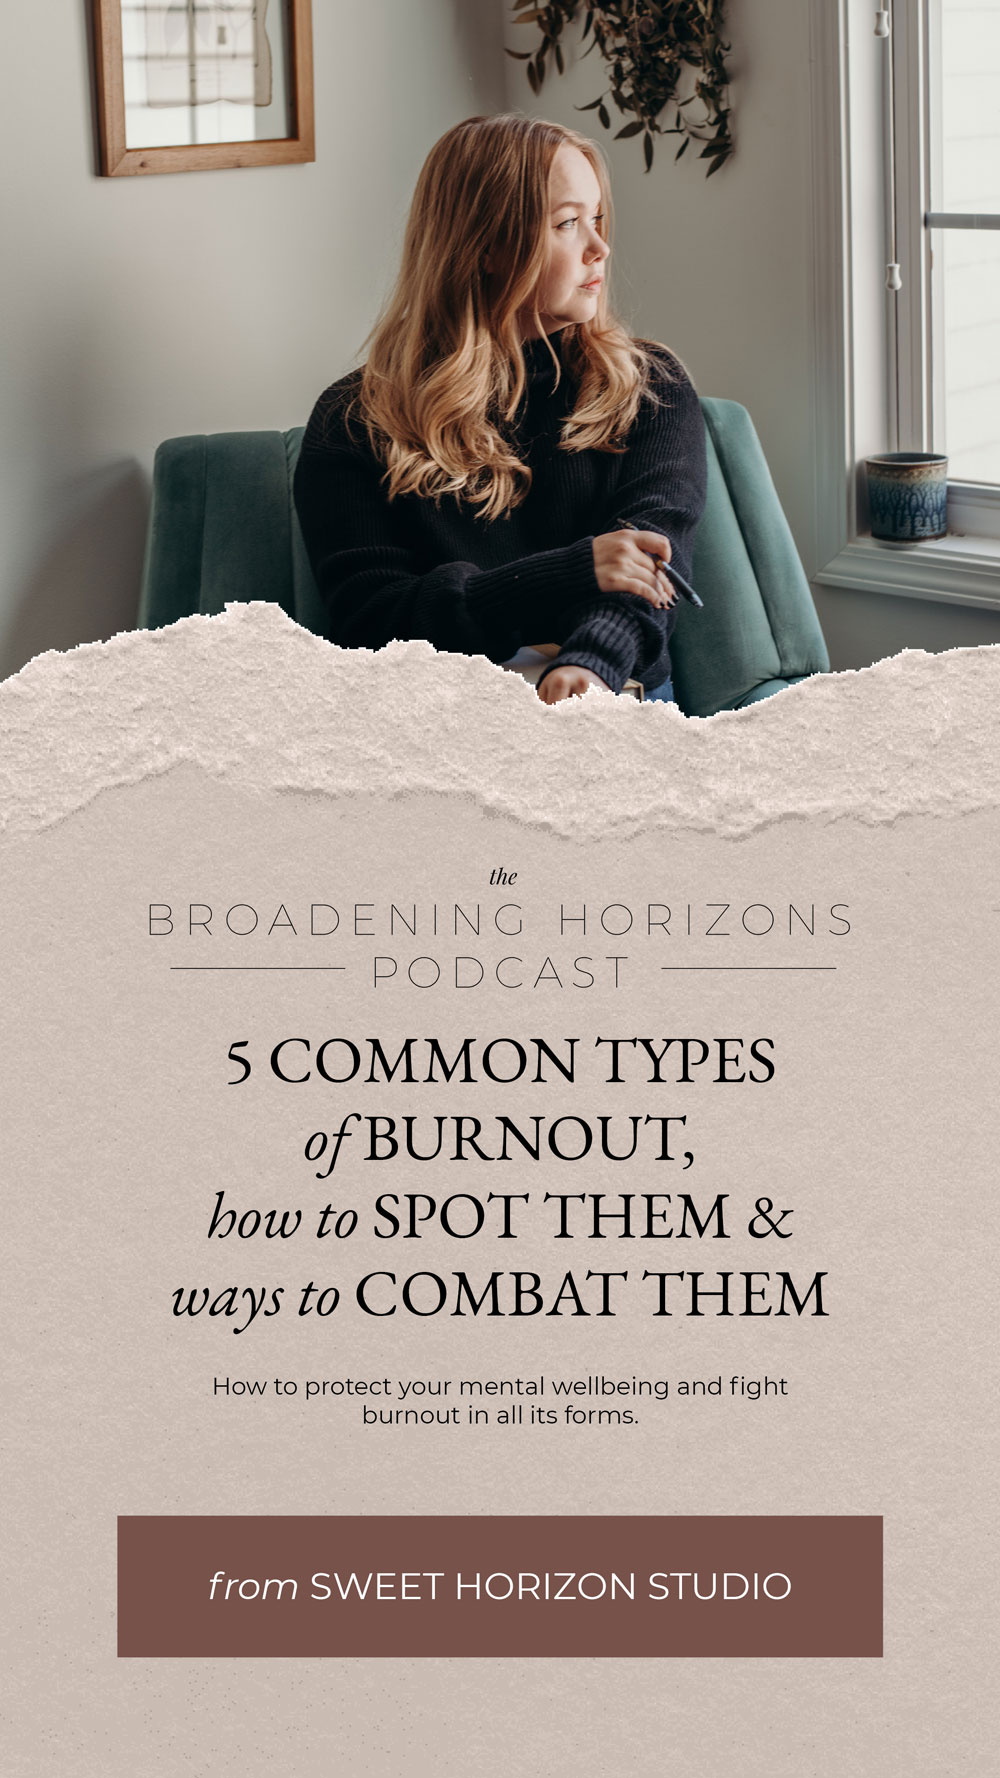 5 Common Types of Burnout, How to Spot Them & Ways to Combat Them from www.sweethorizonblog.com